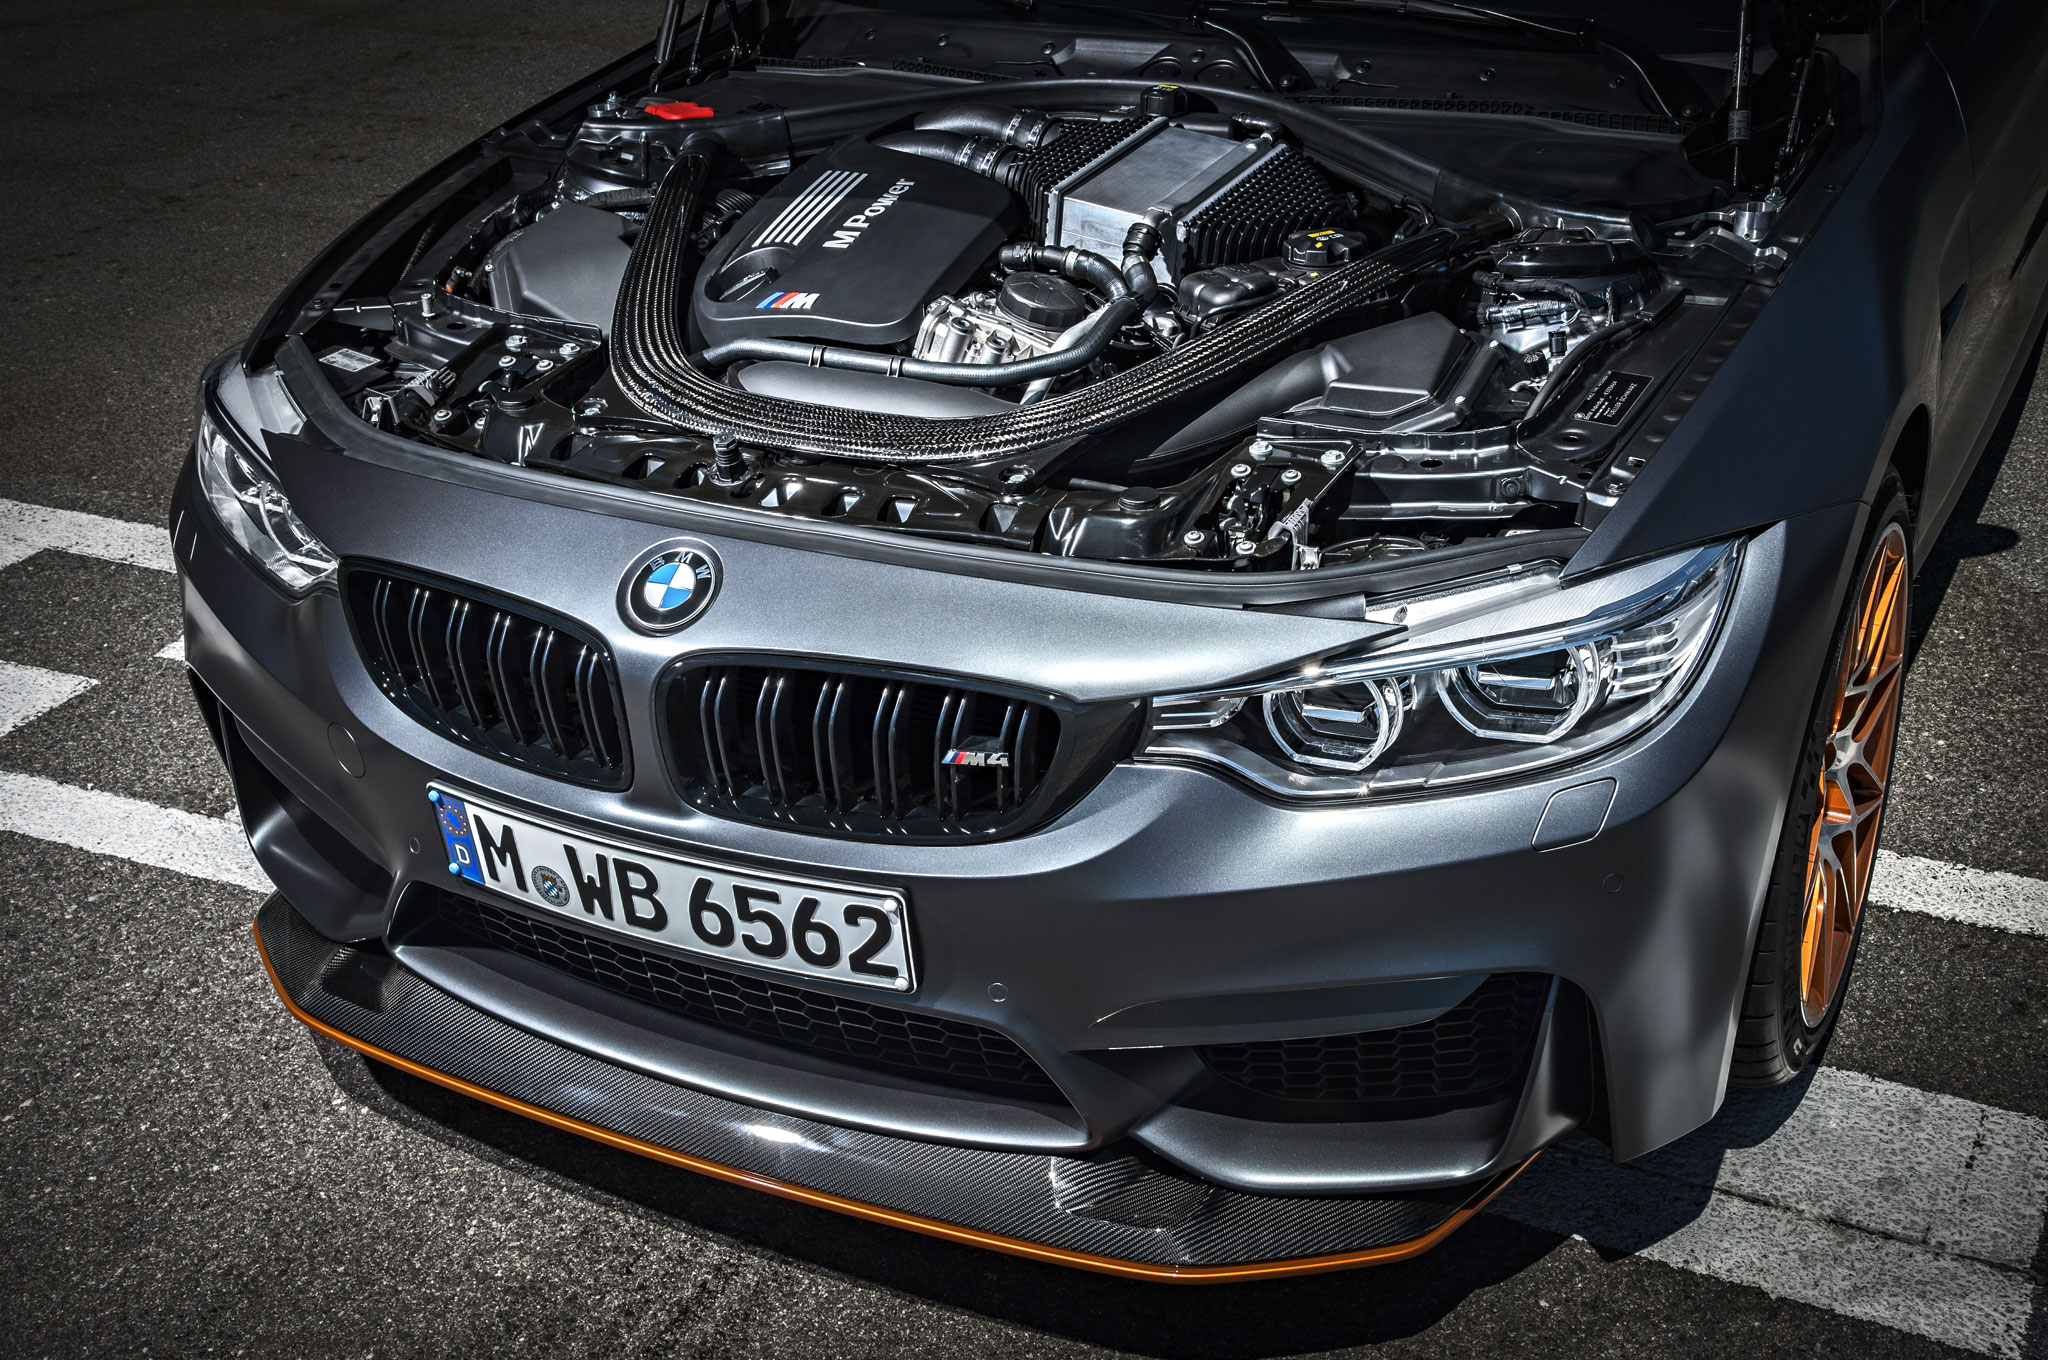 bmw m4 gts water injection system will go mass market by 2019 report automobile magazine. Black Bedroom Furniture Sets. Home Design Ideas